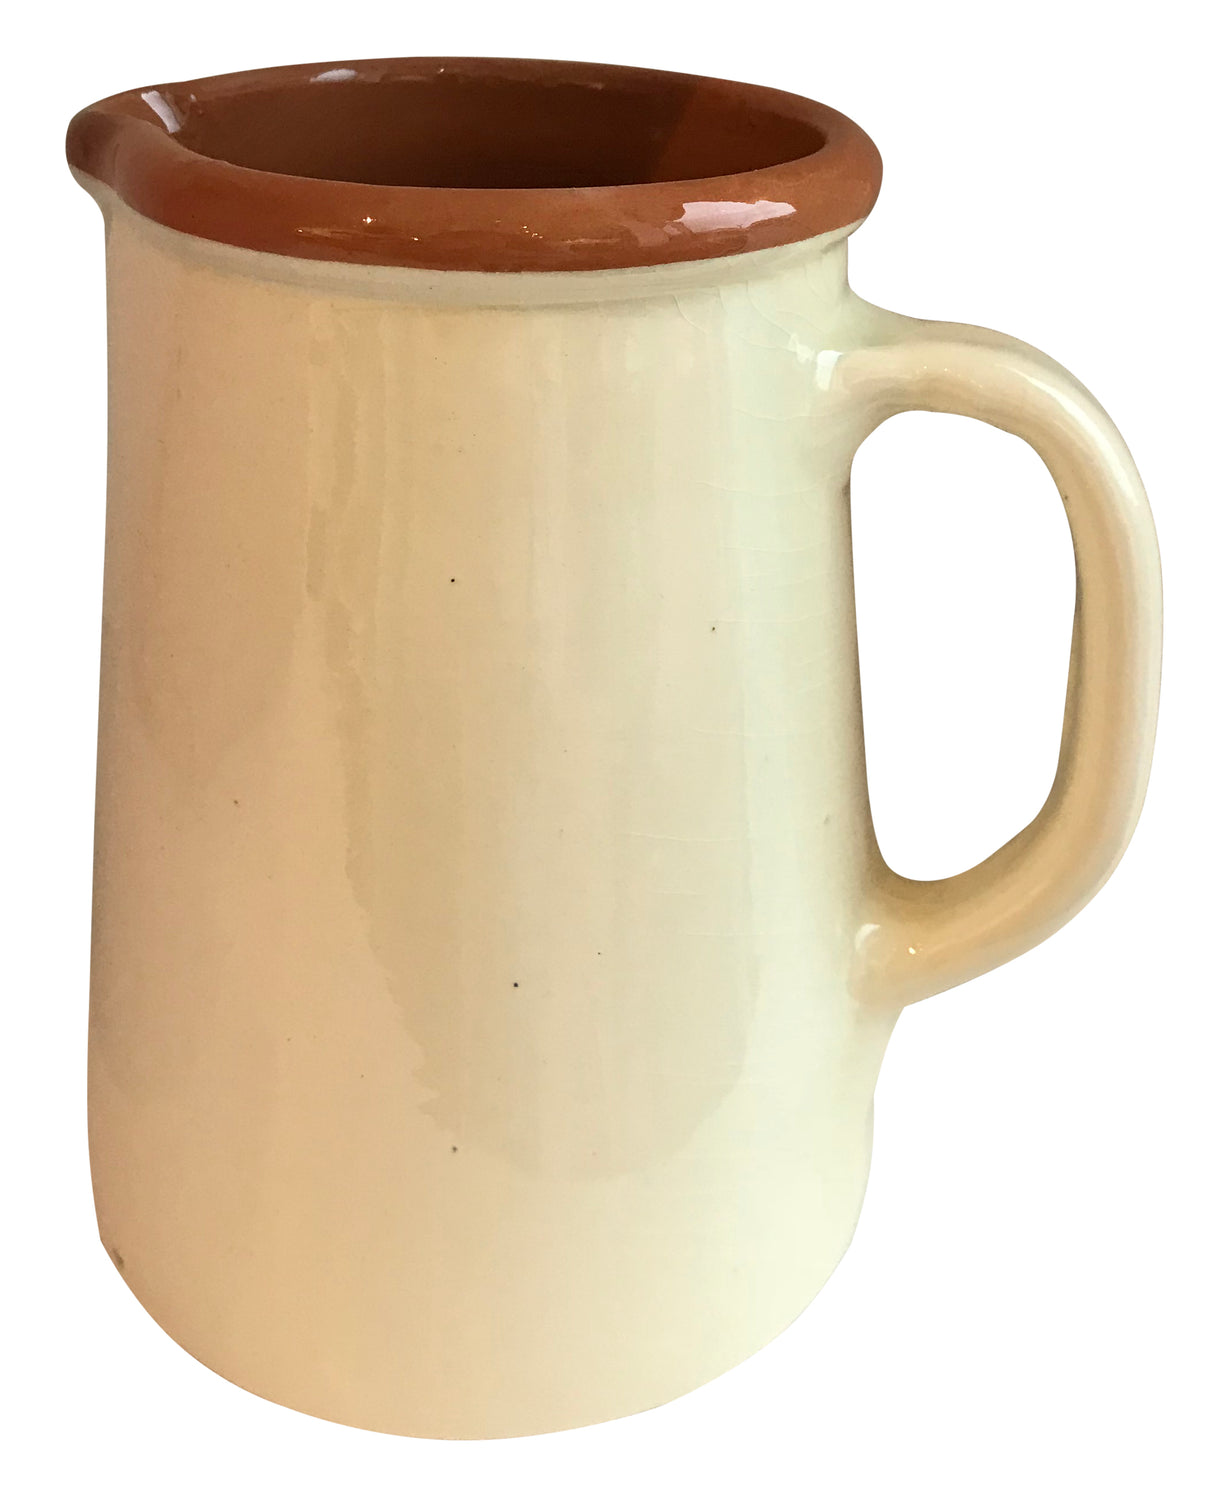 From the region of Catalonia, Spain comes this beautiful, authentic Spanish Jug